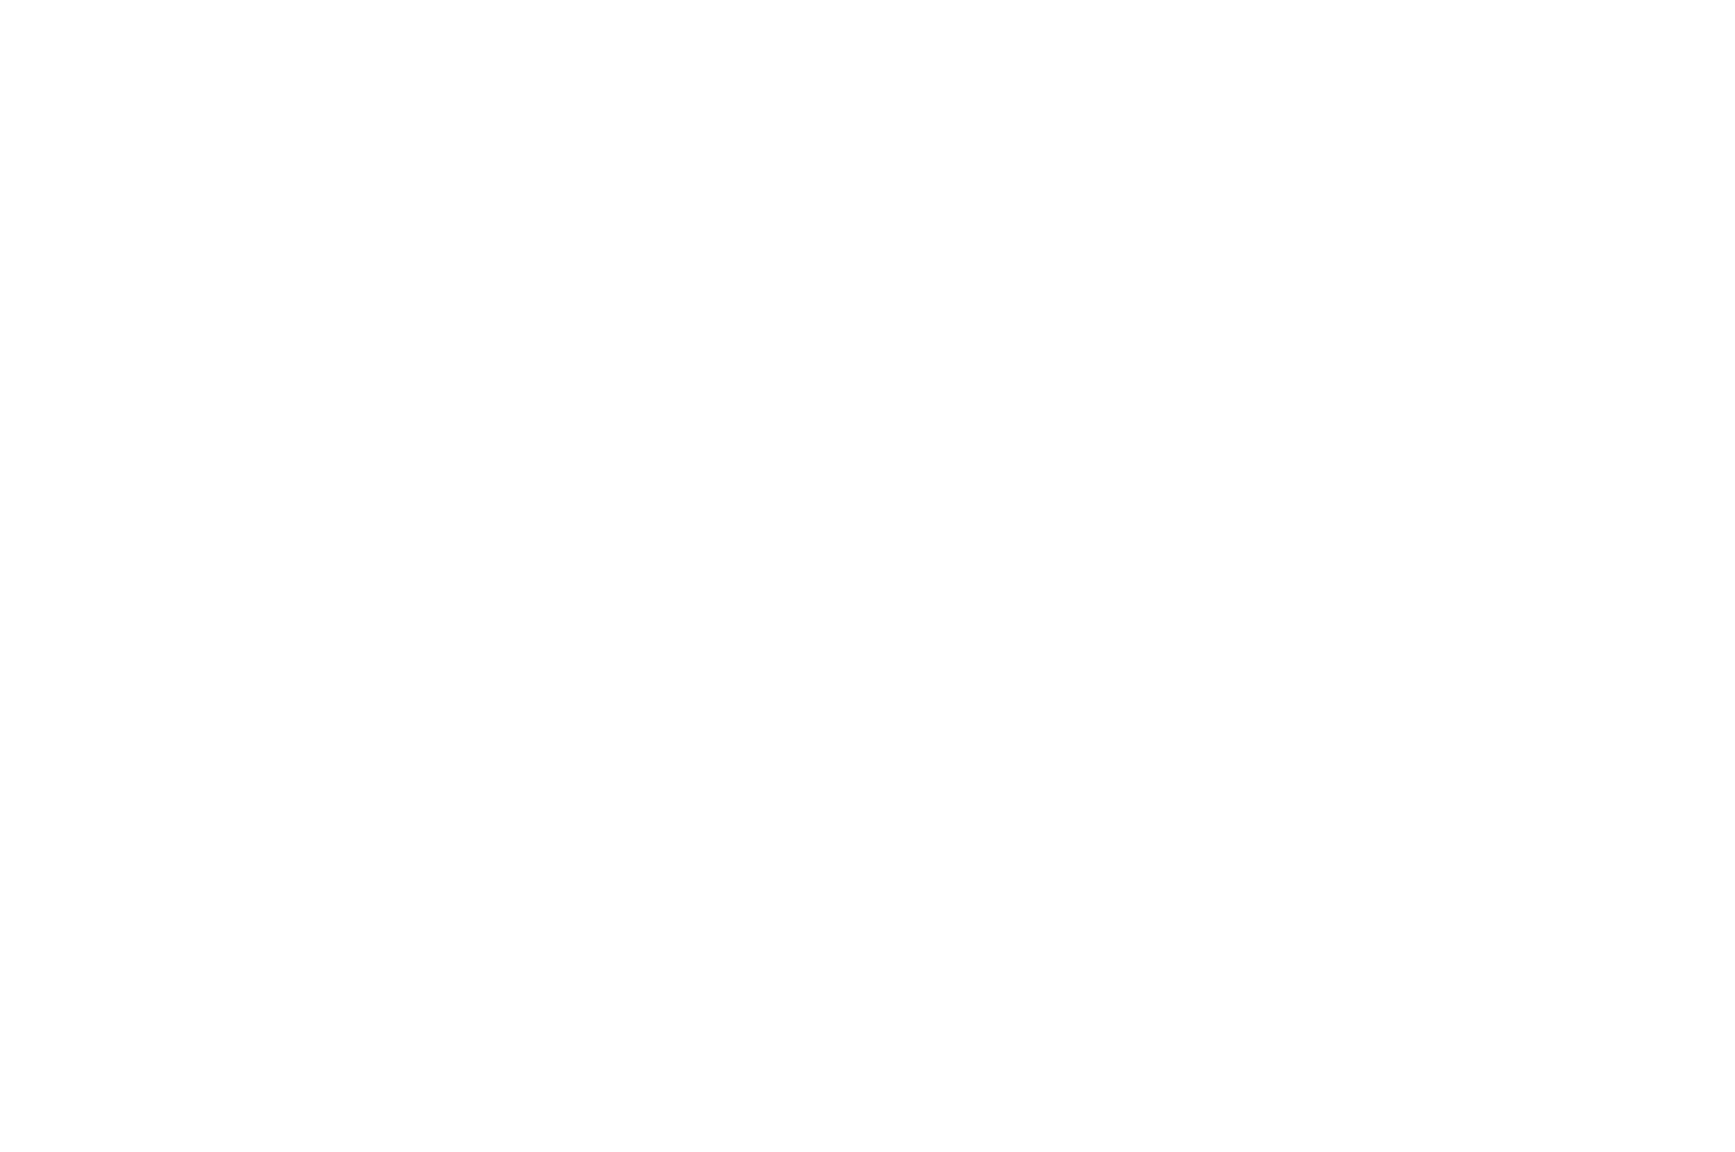 OFFICIAL SELECTION - The Monkey Bread Tree Film Awards - 2020